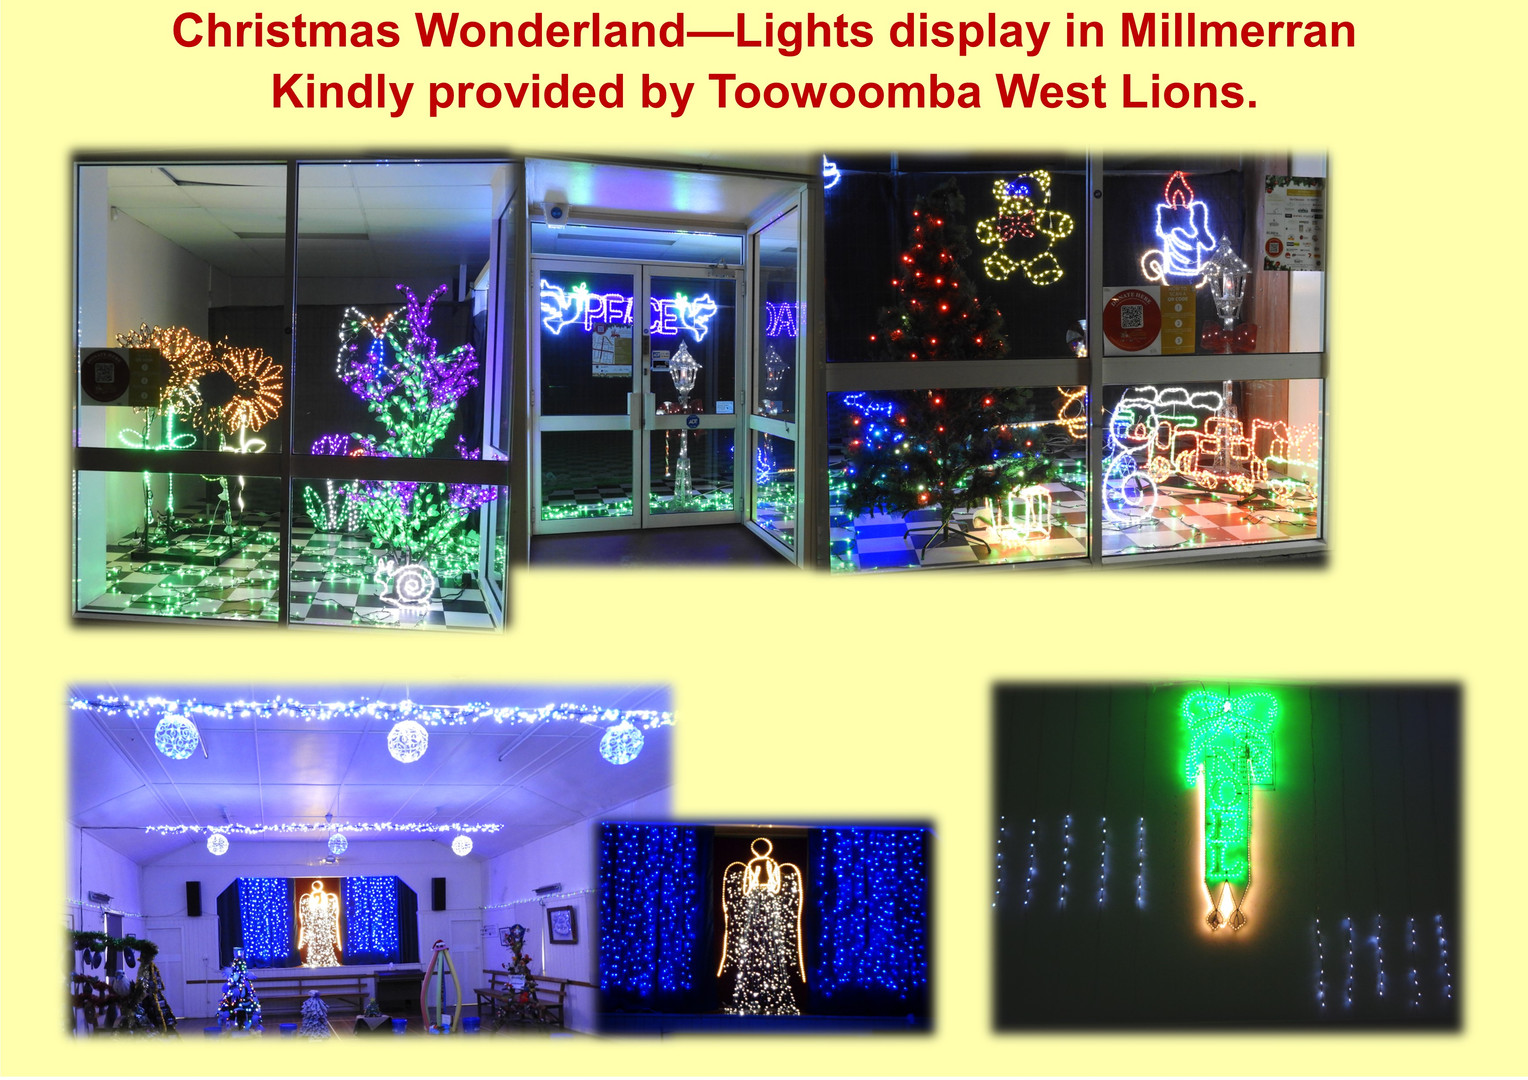 Christmas Wonderland Lights.jpg